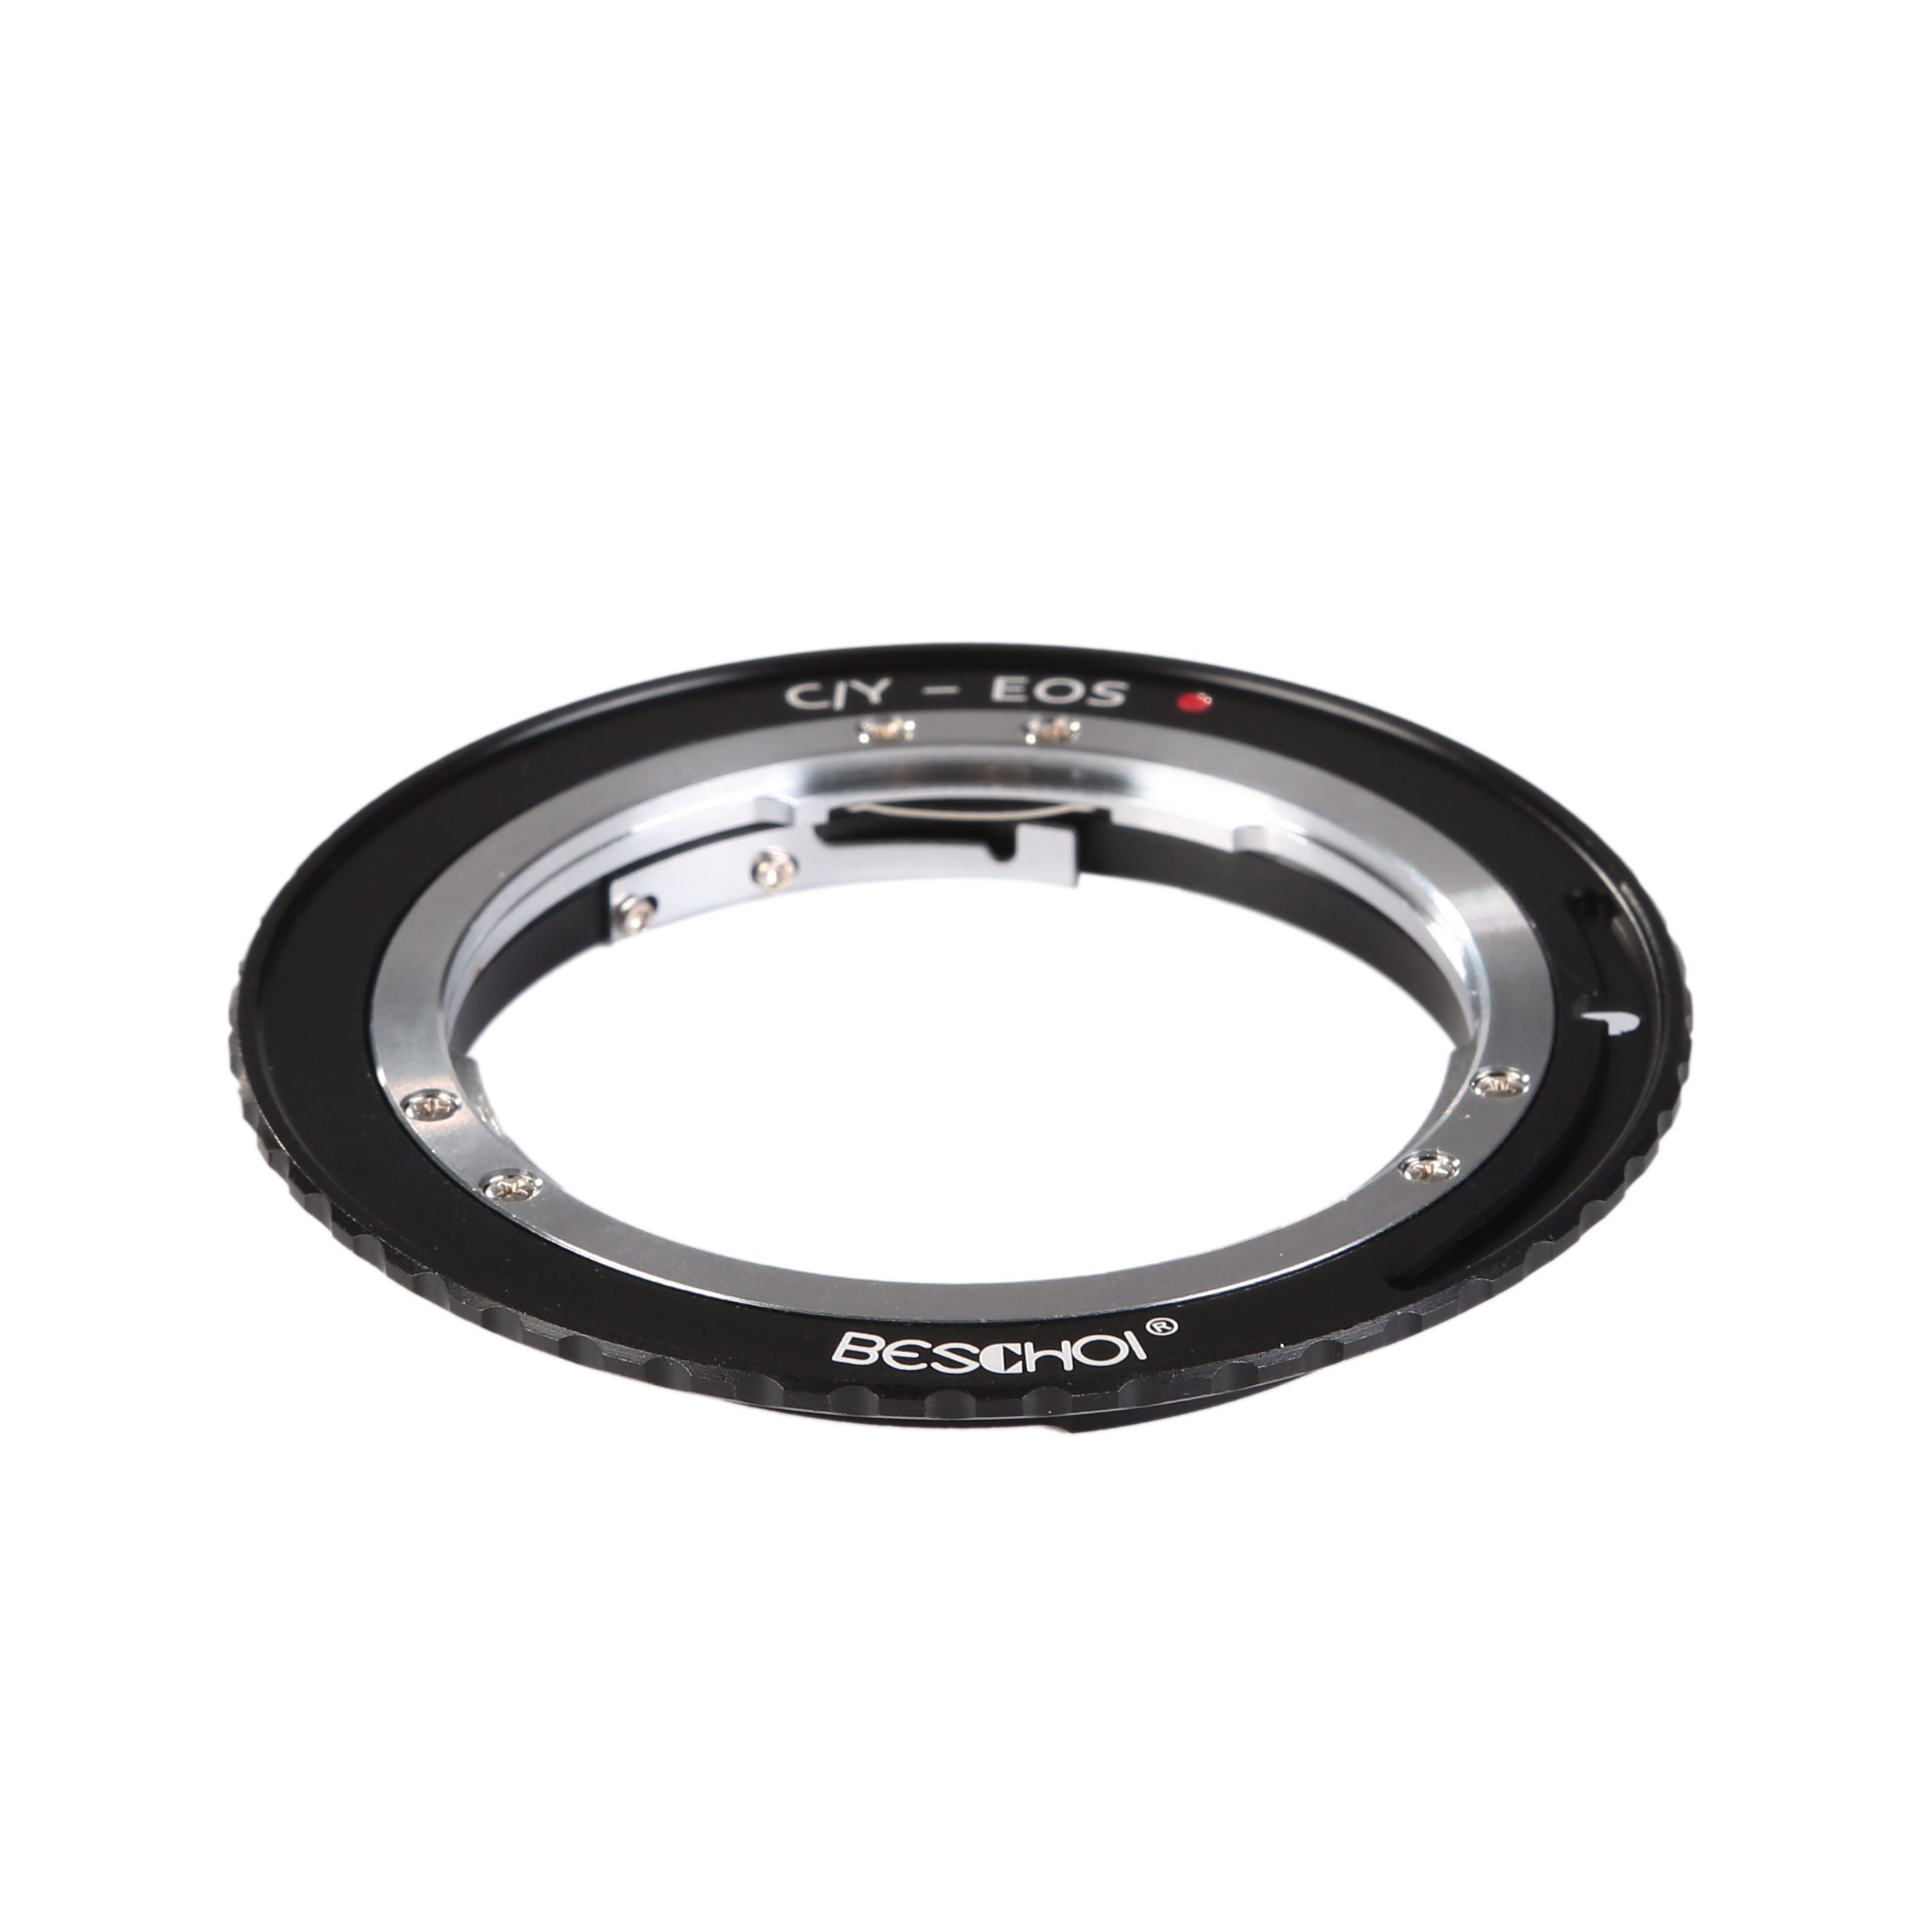 Beschoi Lens Mount Adapter, Contax Yashica C/Y Lens to Canon EOS EF Adapter, for Canon EOS 1D, 1DS, Mark II, III, IV, 5D, Mark II, 7D, 30D, 40D, 50D, 60D, 70D, Digital Rebel T2i, T3, T3i, T4i, T5i